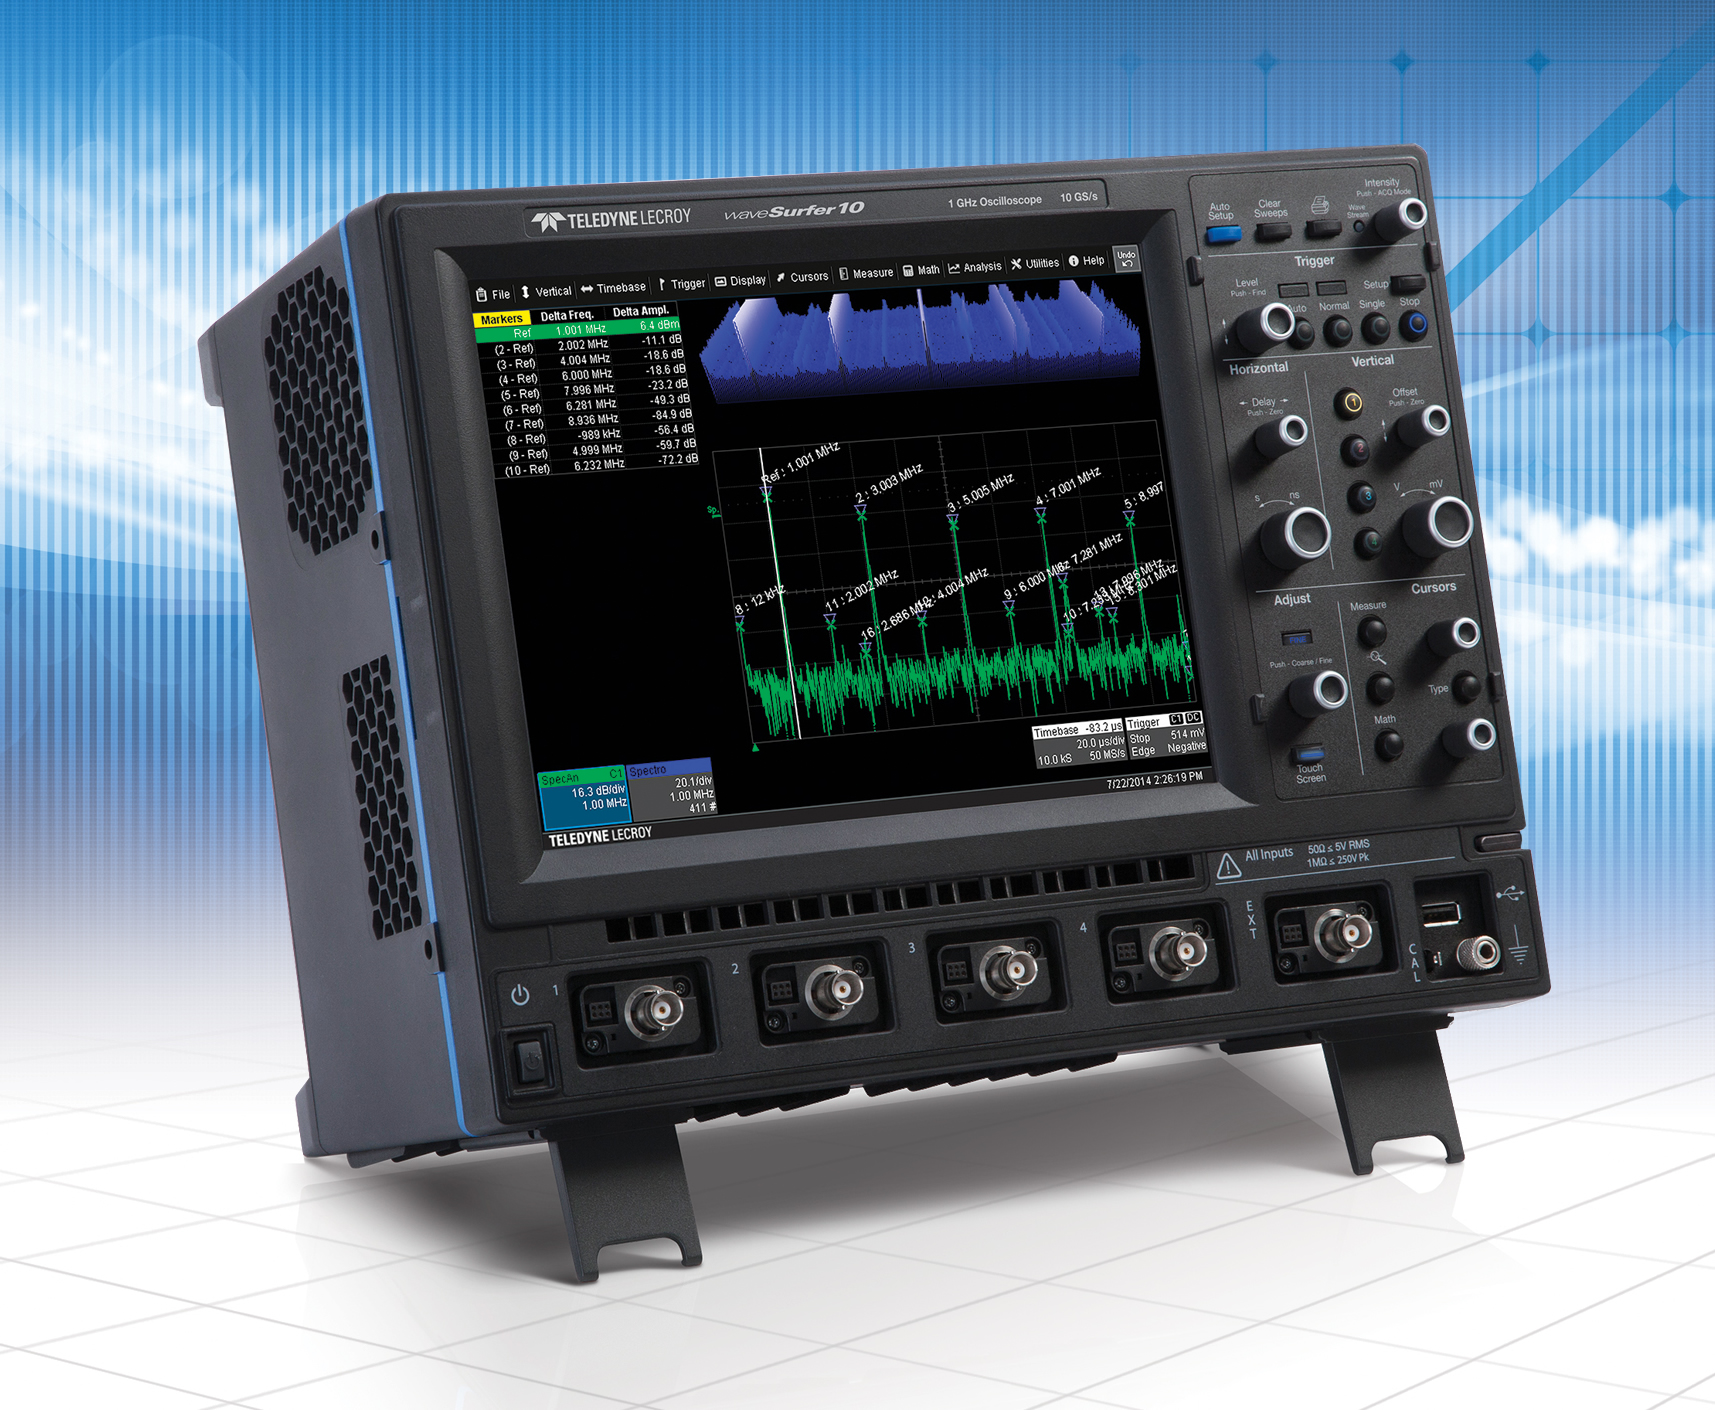 Digital oscilloscope features MAUI touch screen